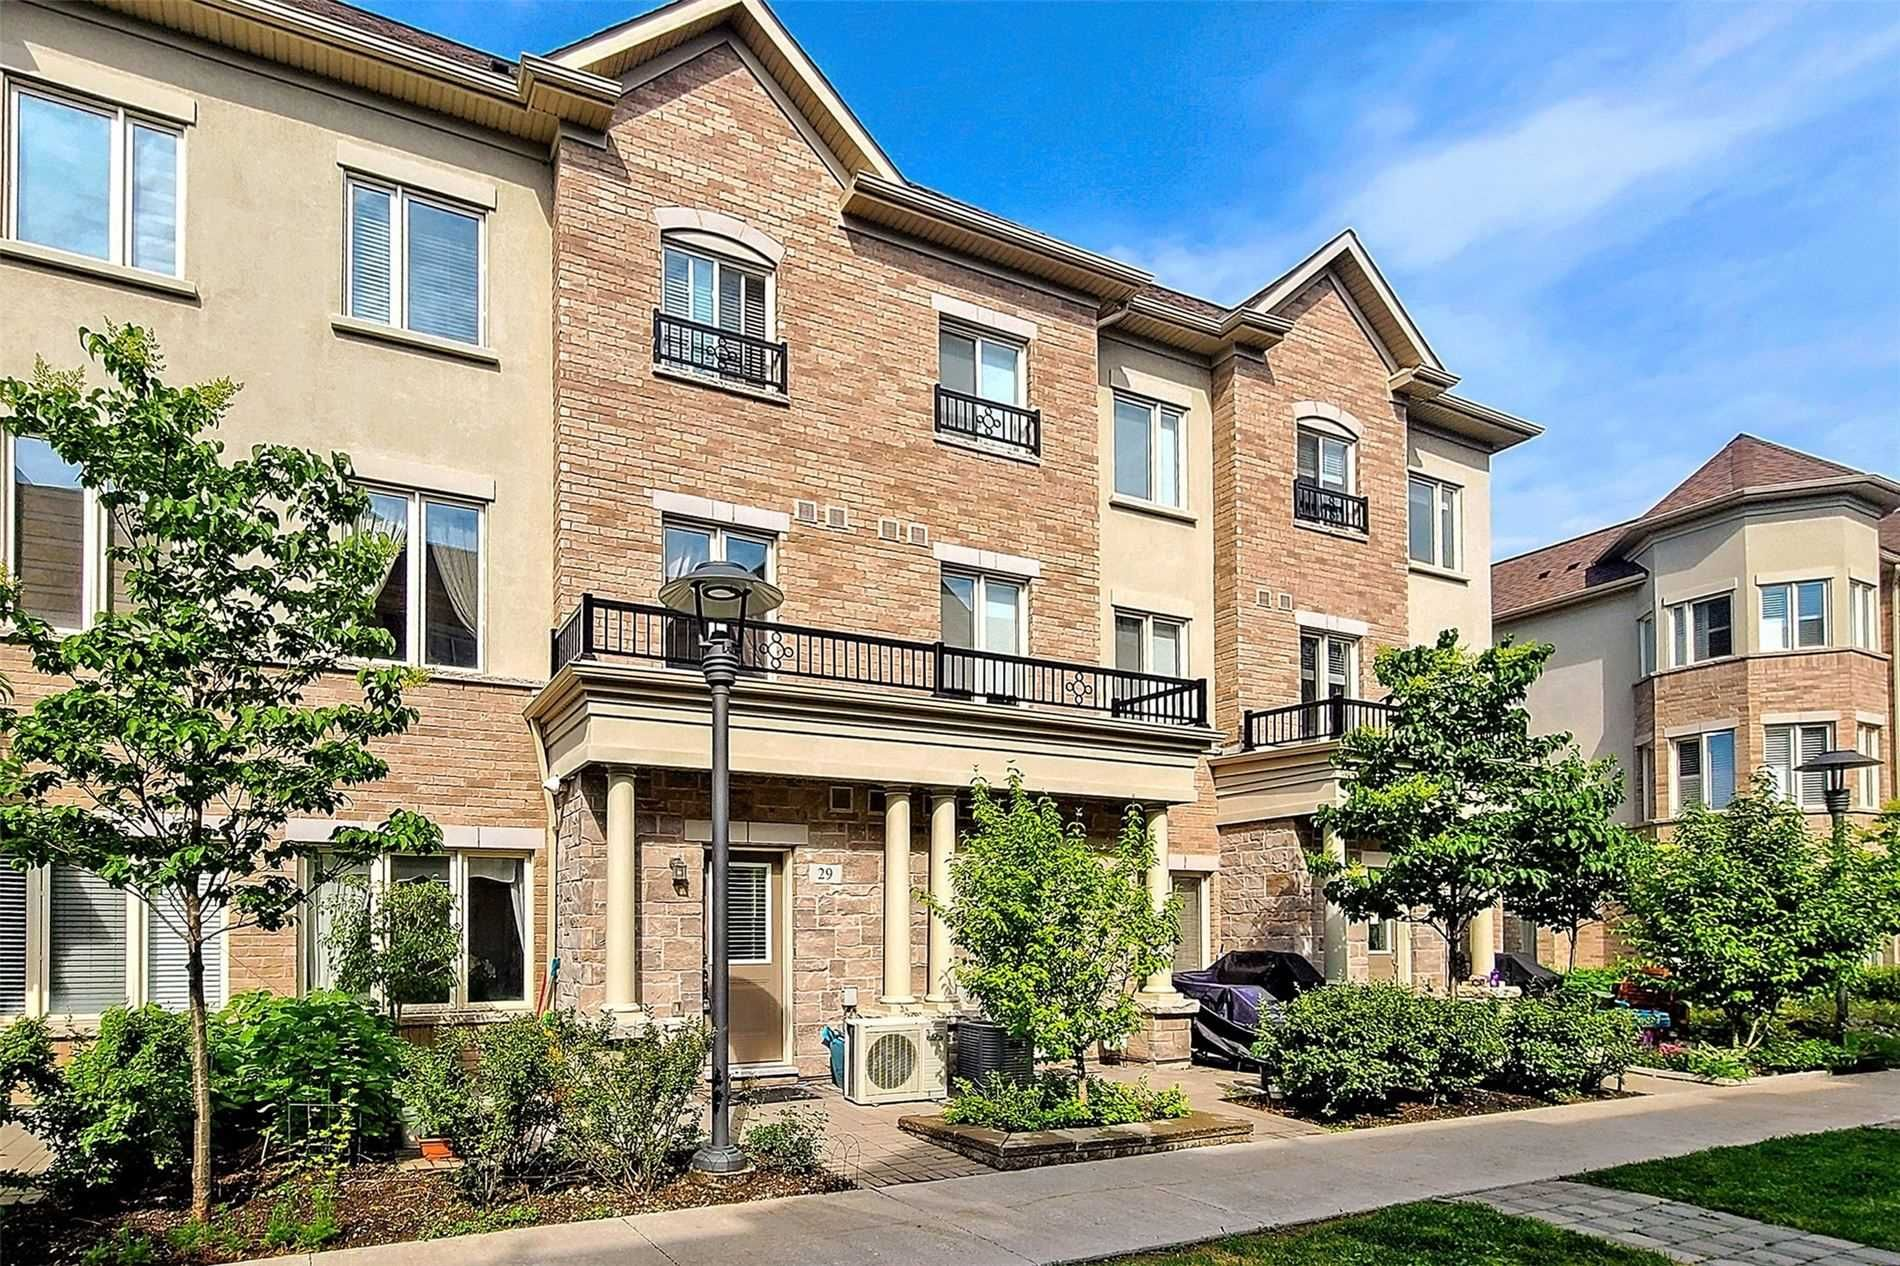 27 Coneflower Cres, unit 29 for sale in Toronto - image #1